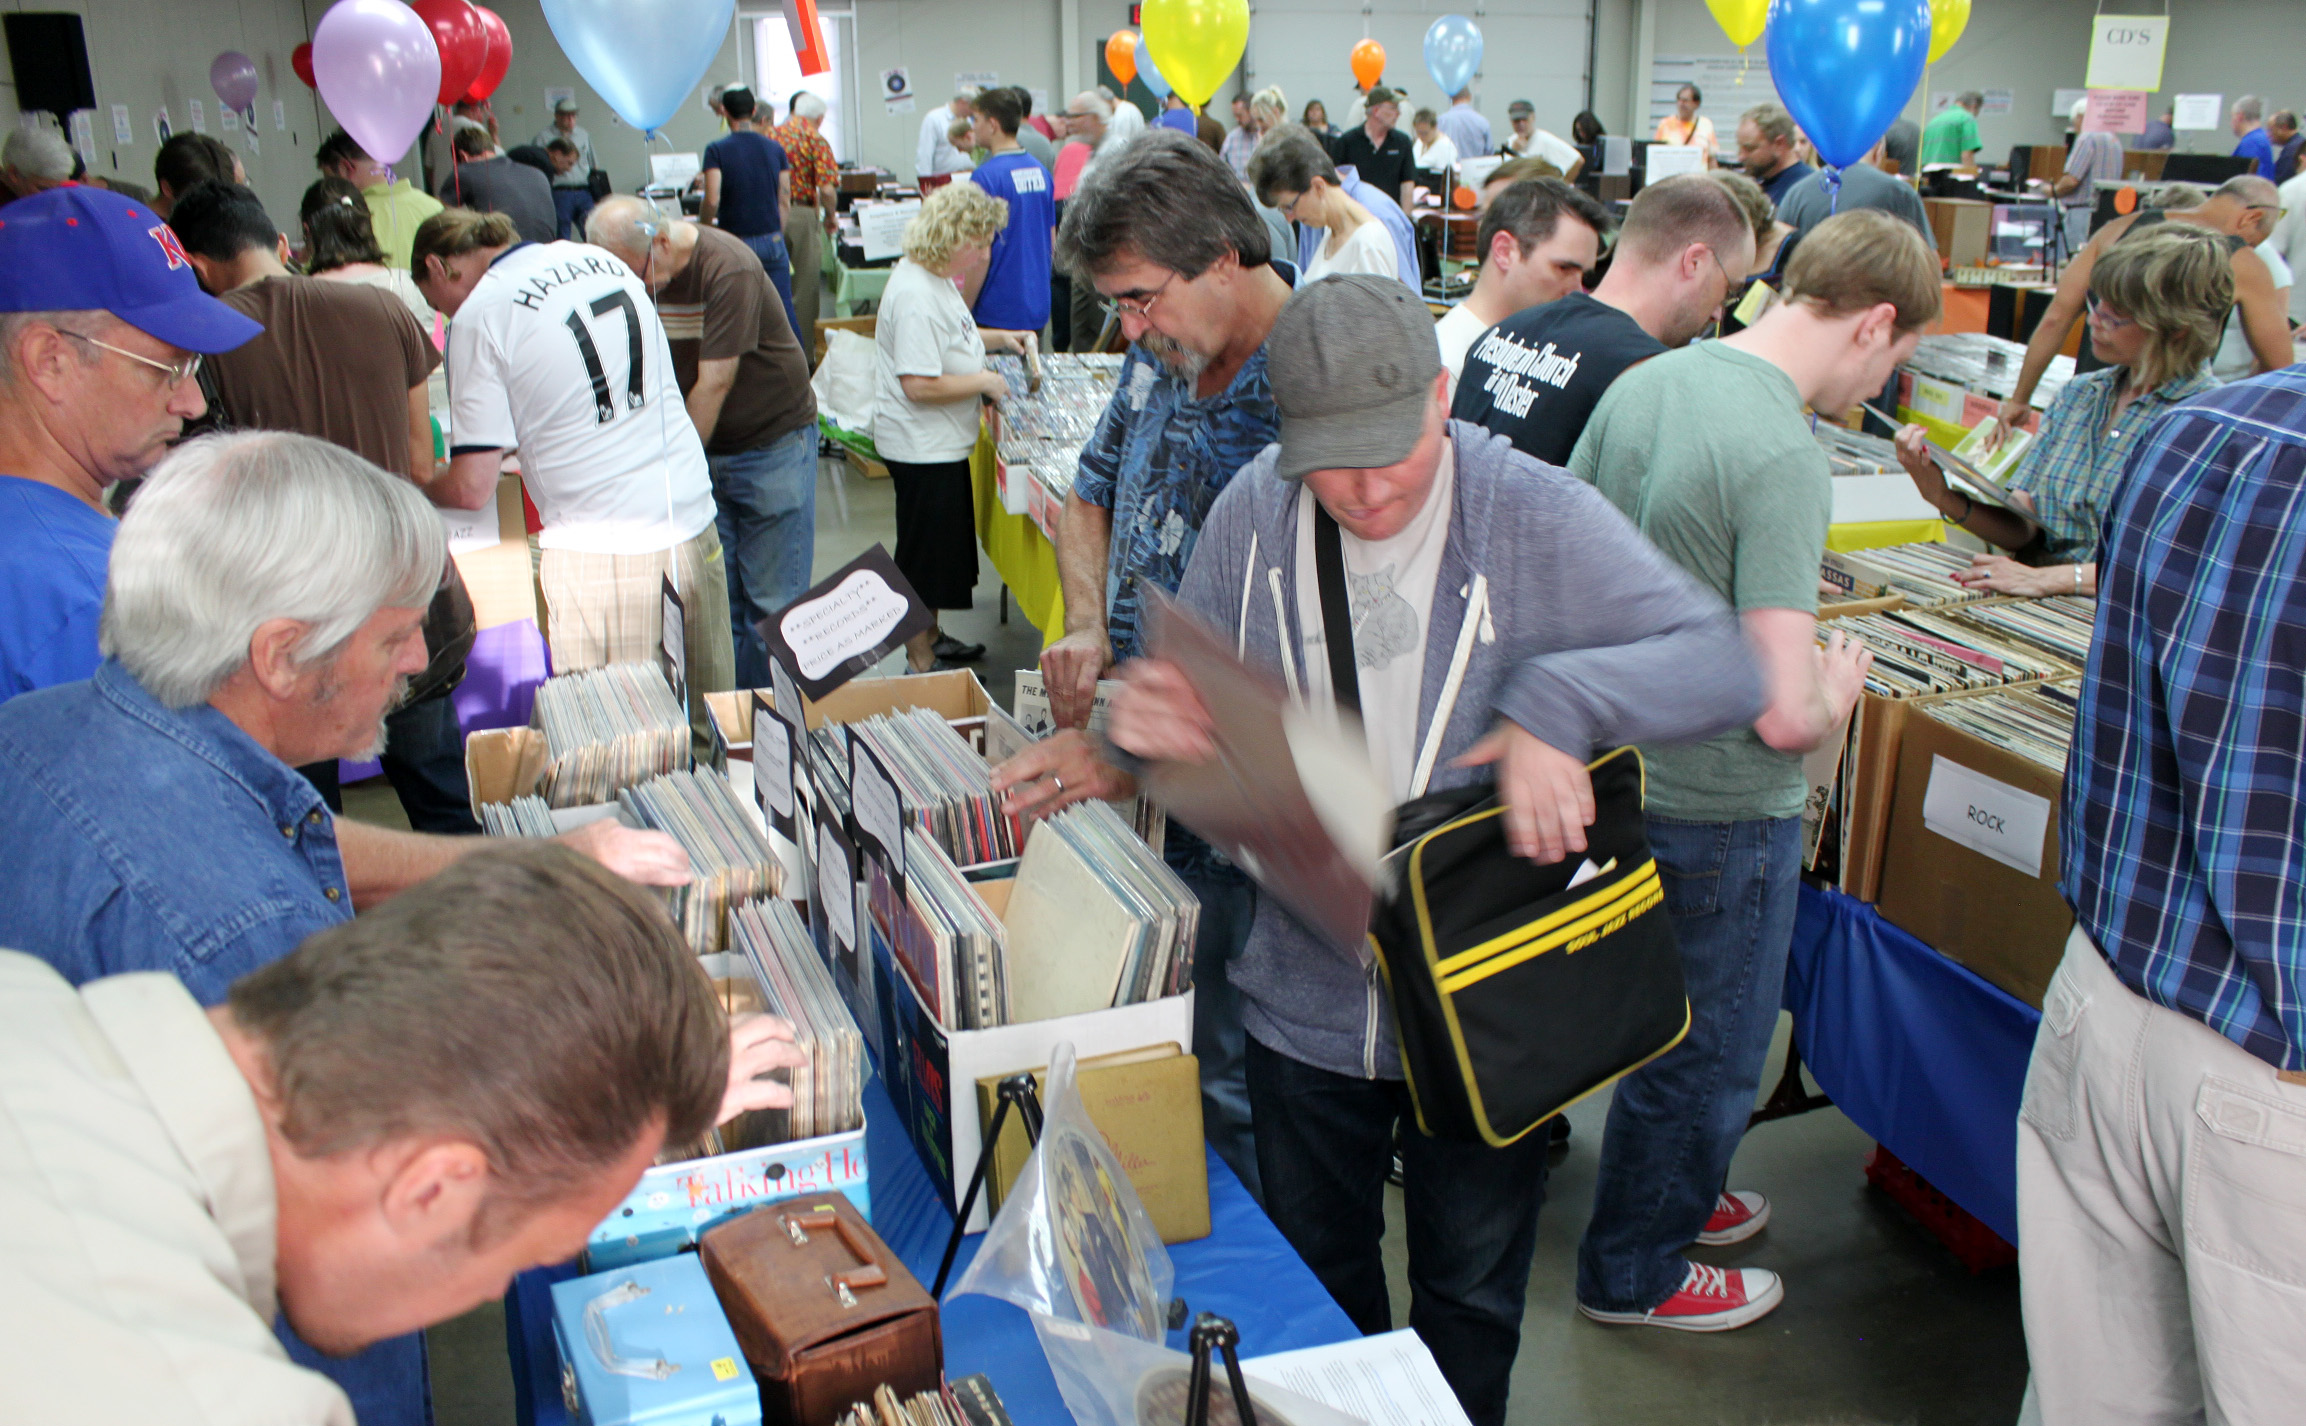 Opening night for the FYEO sale is usually packed with those looking for a deal on great vinyl records and audio equipment.